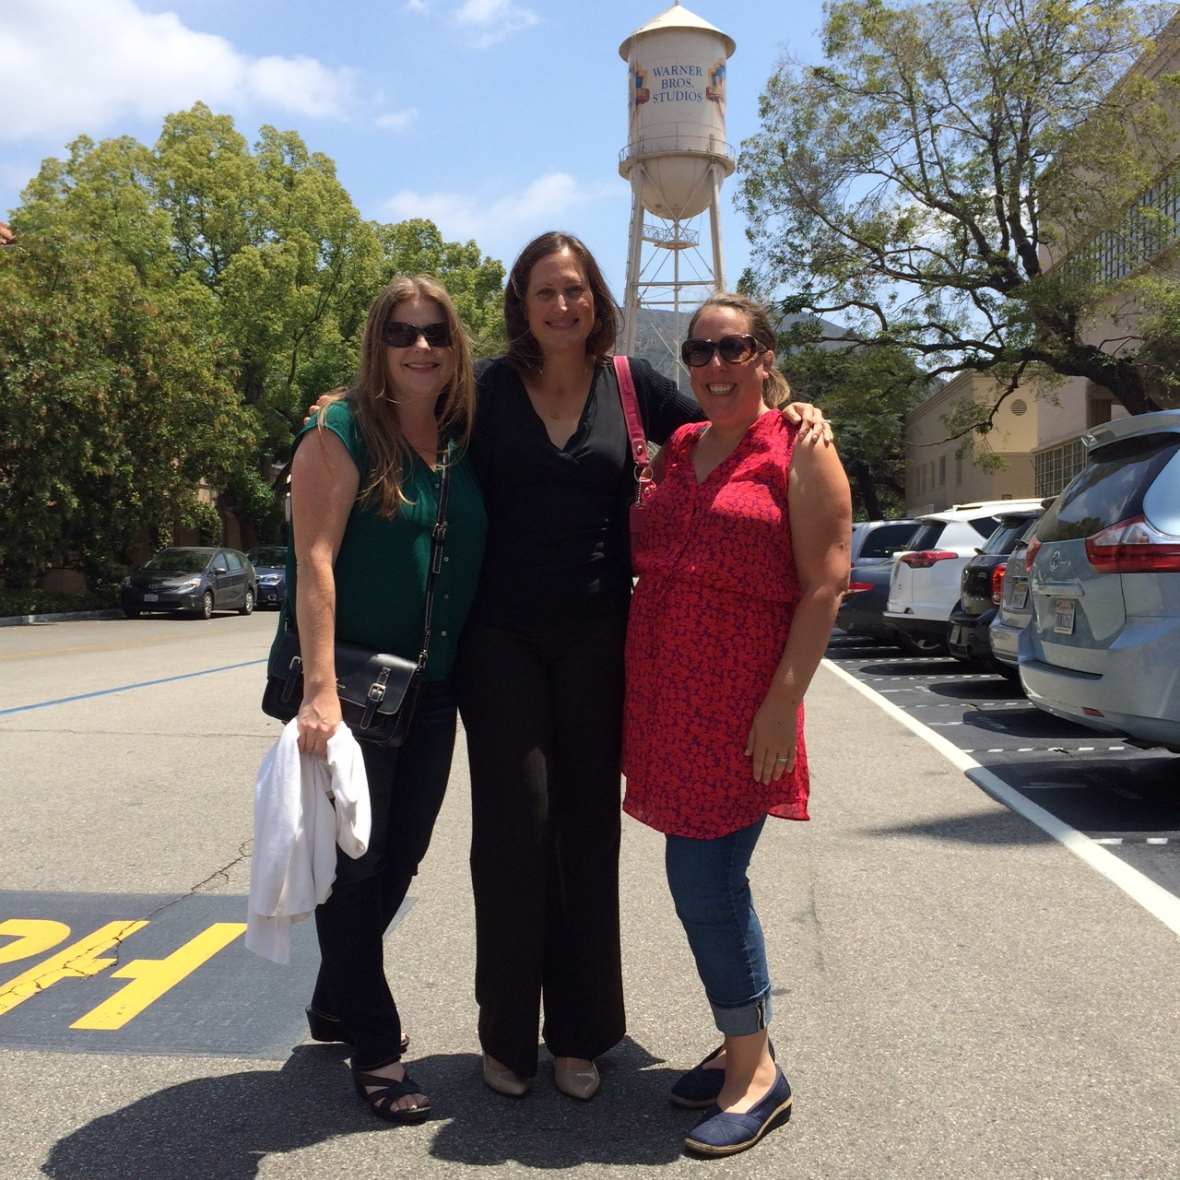 The DG girls power lunching on the WB lot